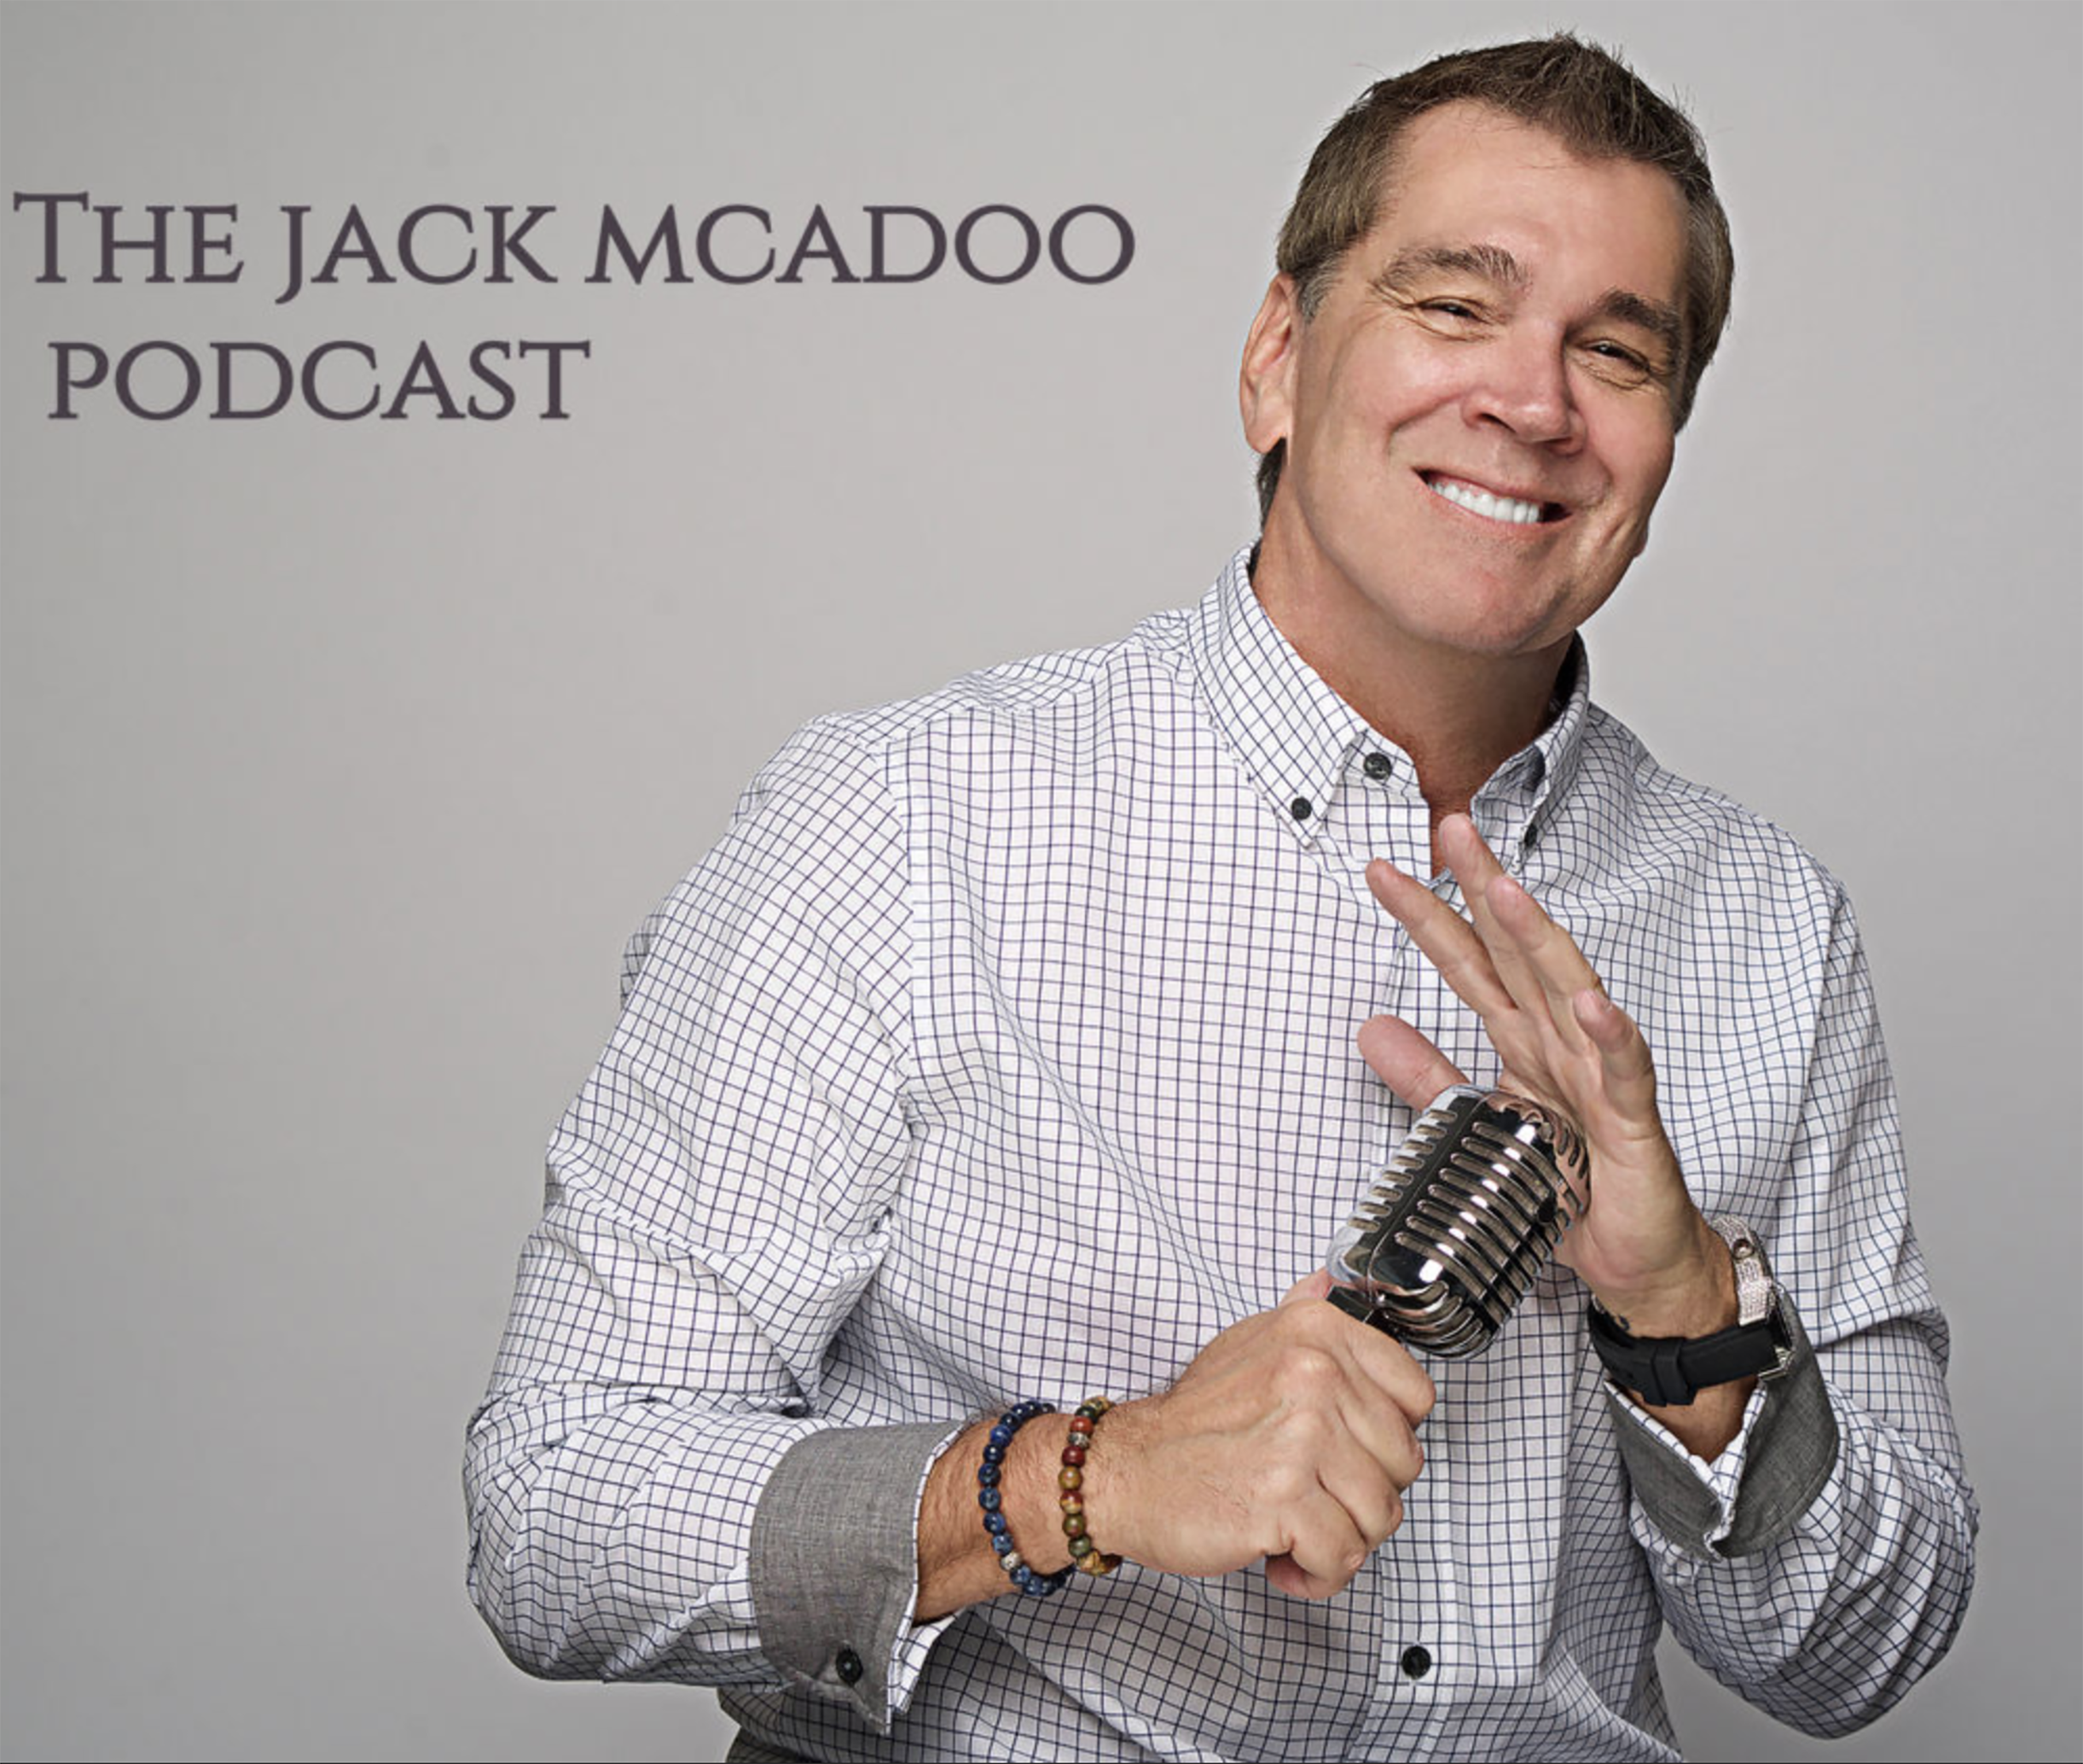 Jack McAdoo Podcast